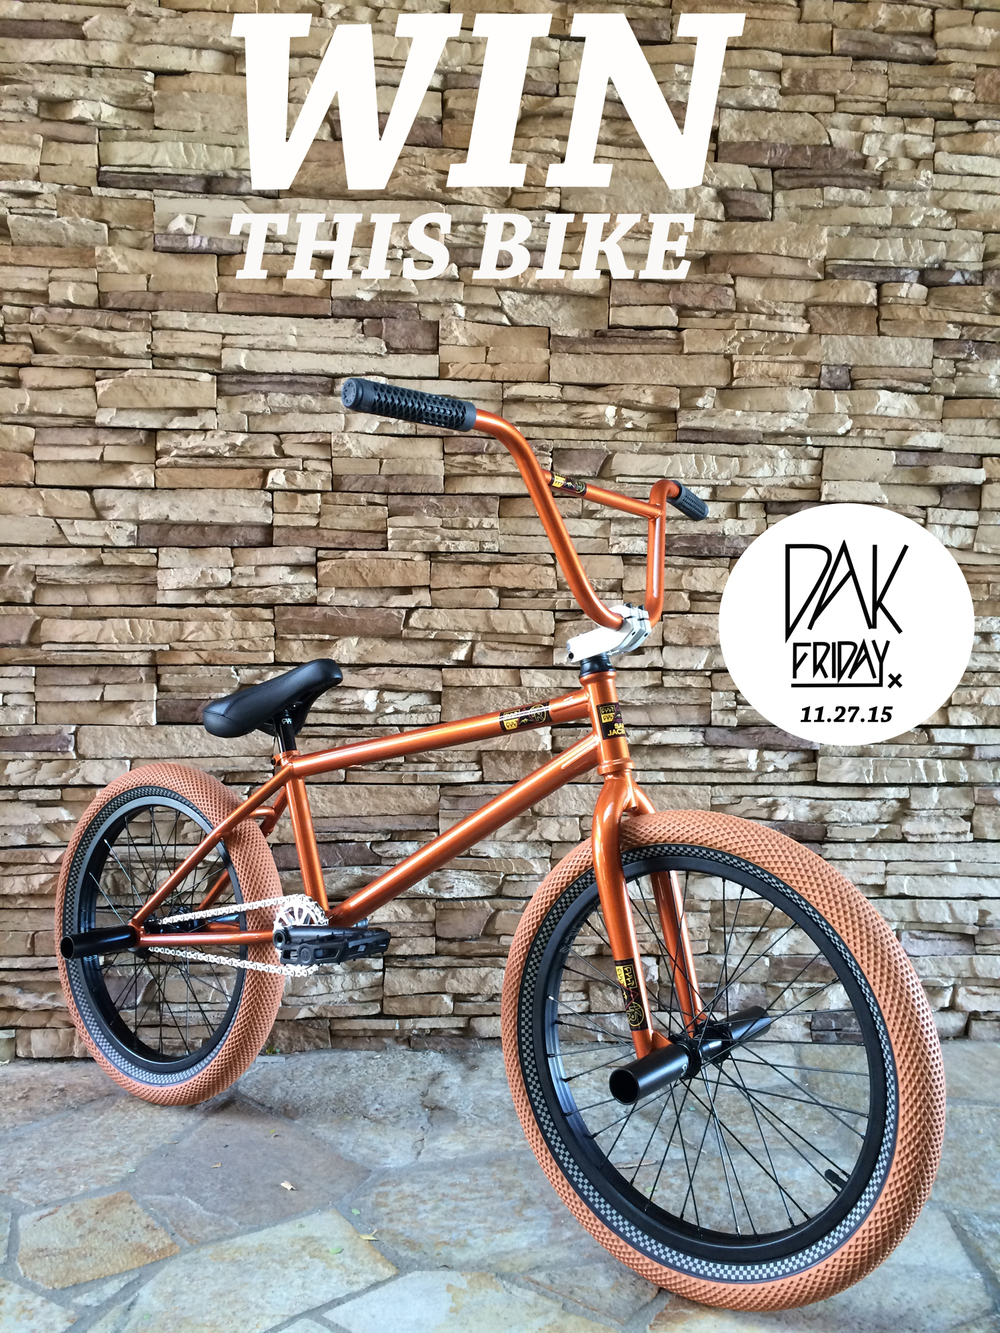 Get a chance to WIN this custom built Cult Dak on Dak Friday, 11/27/15, by purchasing a raffle ticket for $1 or a single raffle ticket comes with a purchase of a Dak Friday tee shirt. You must be present at the time time of the drawing to Win.